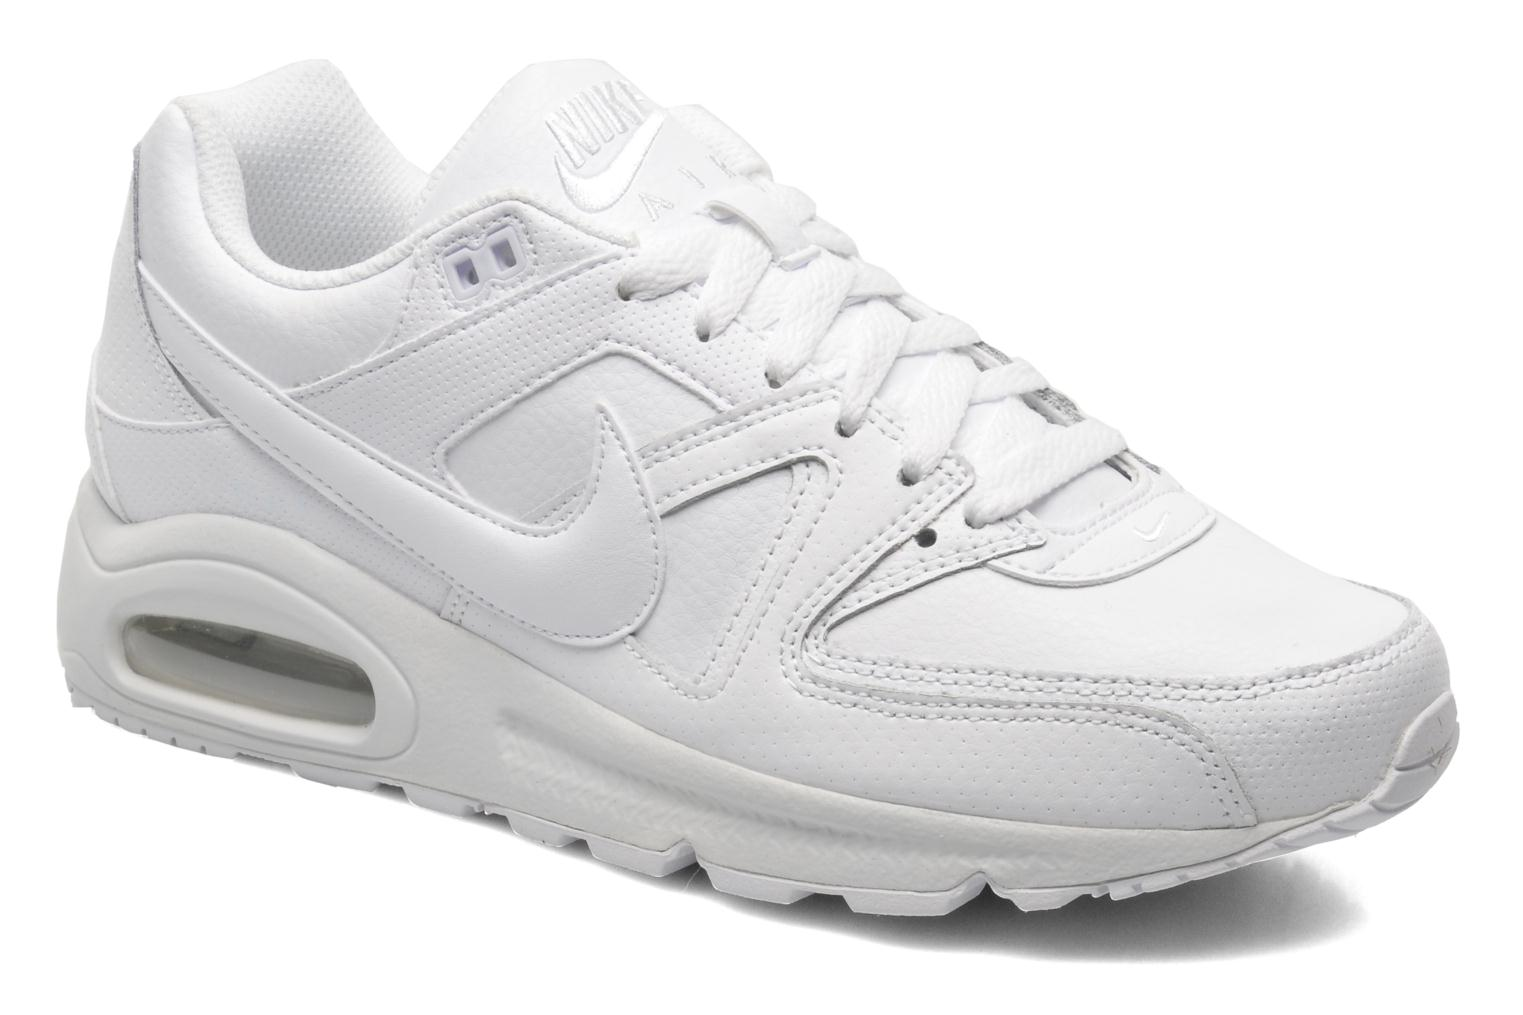 air max amazon,nike air max bw noir rose,sarenza air max homme